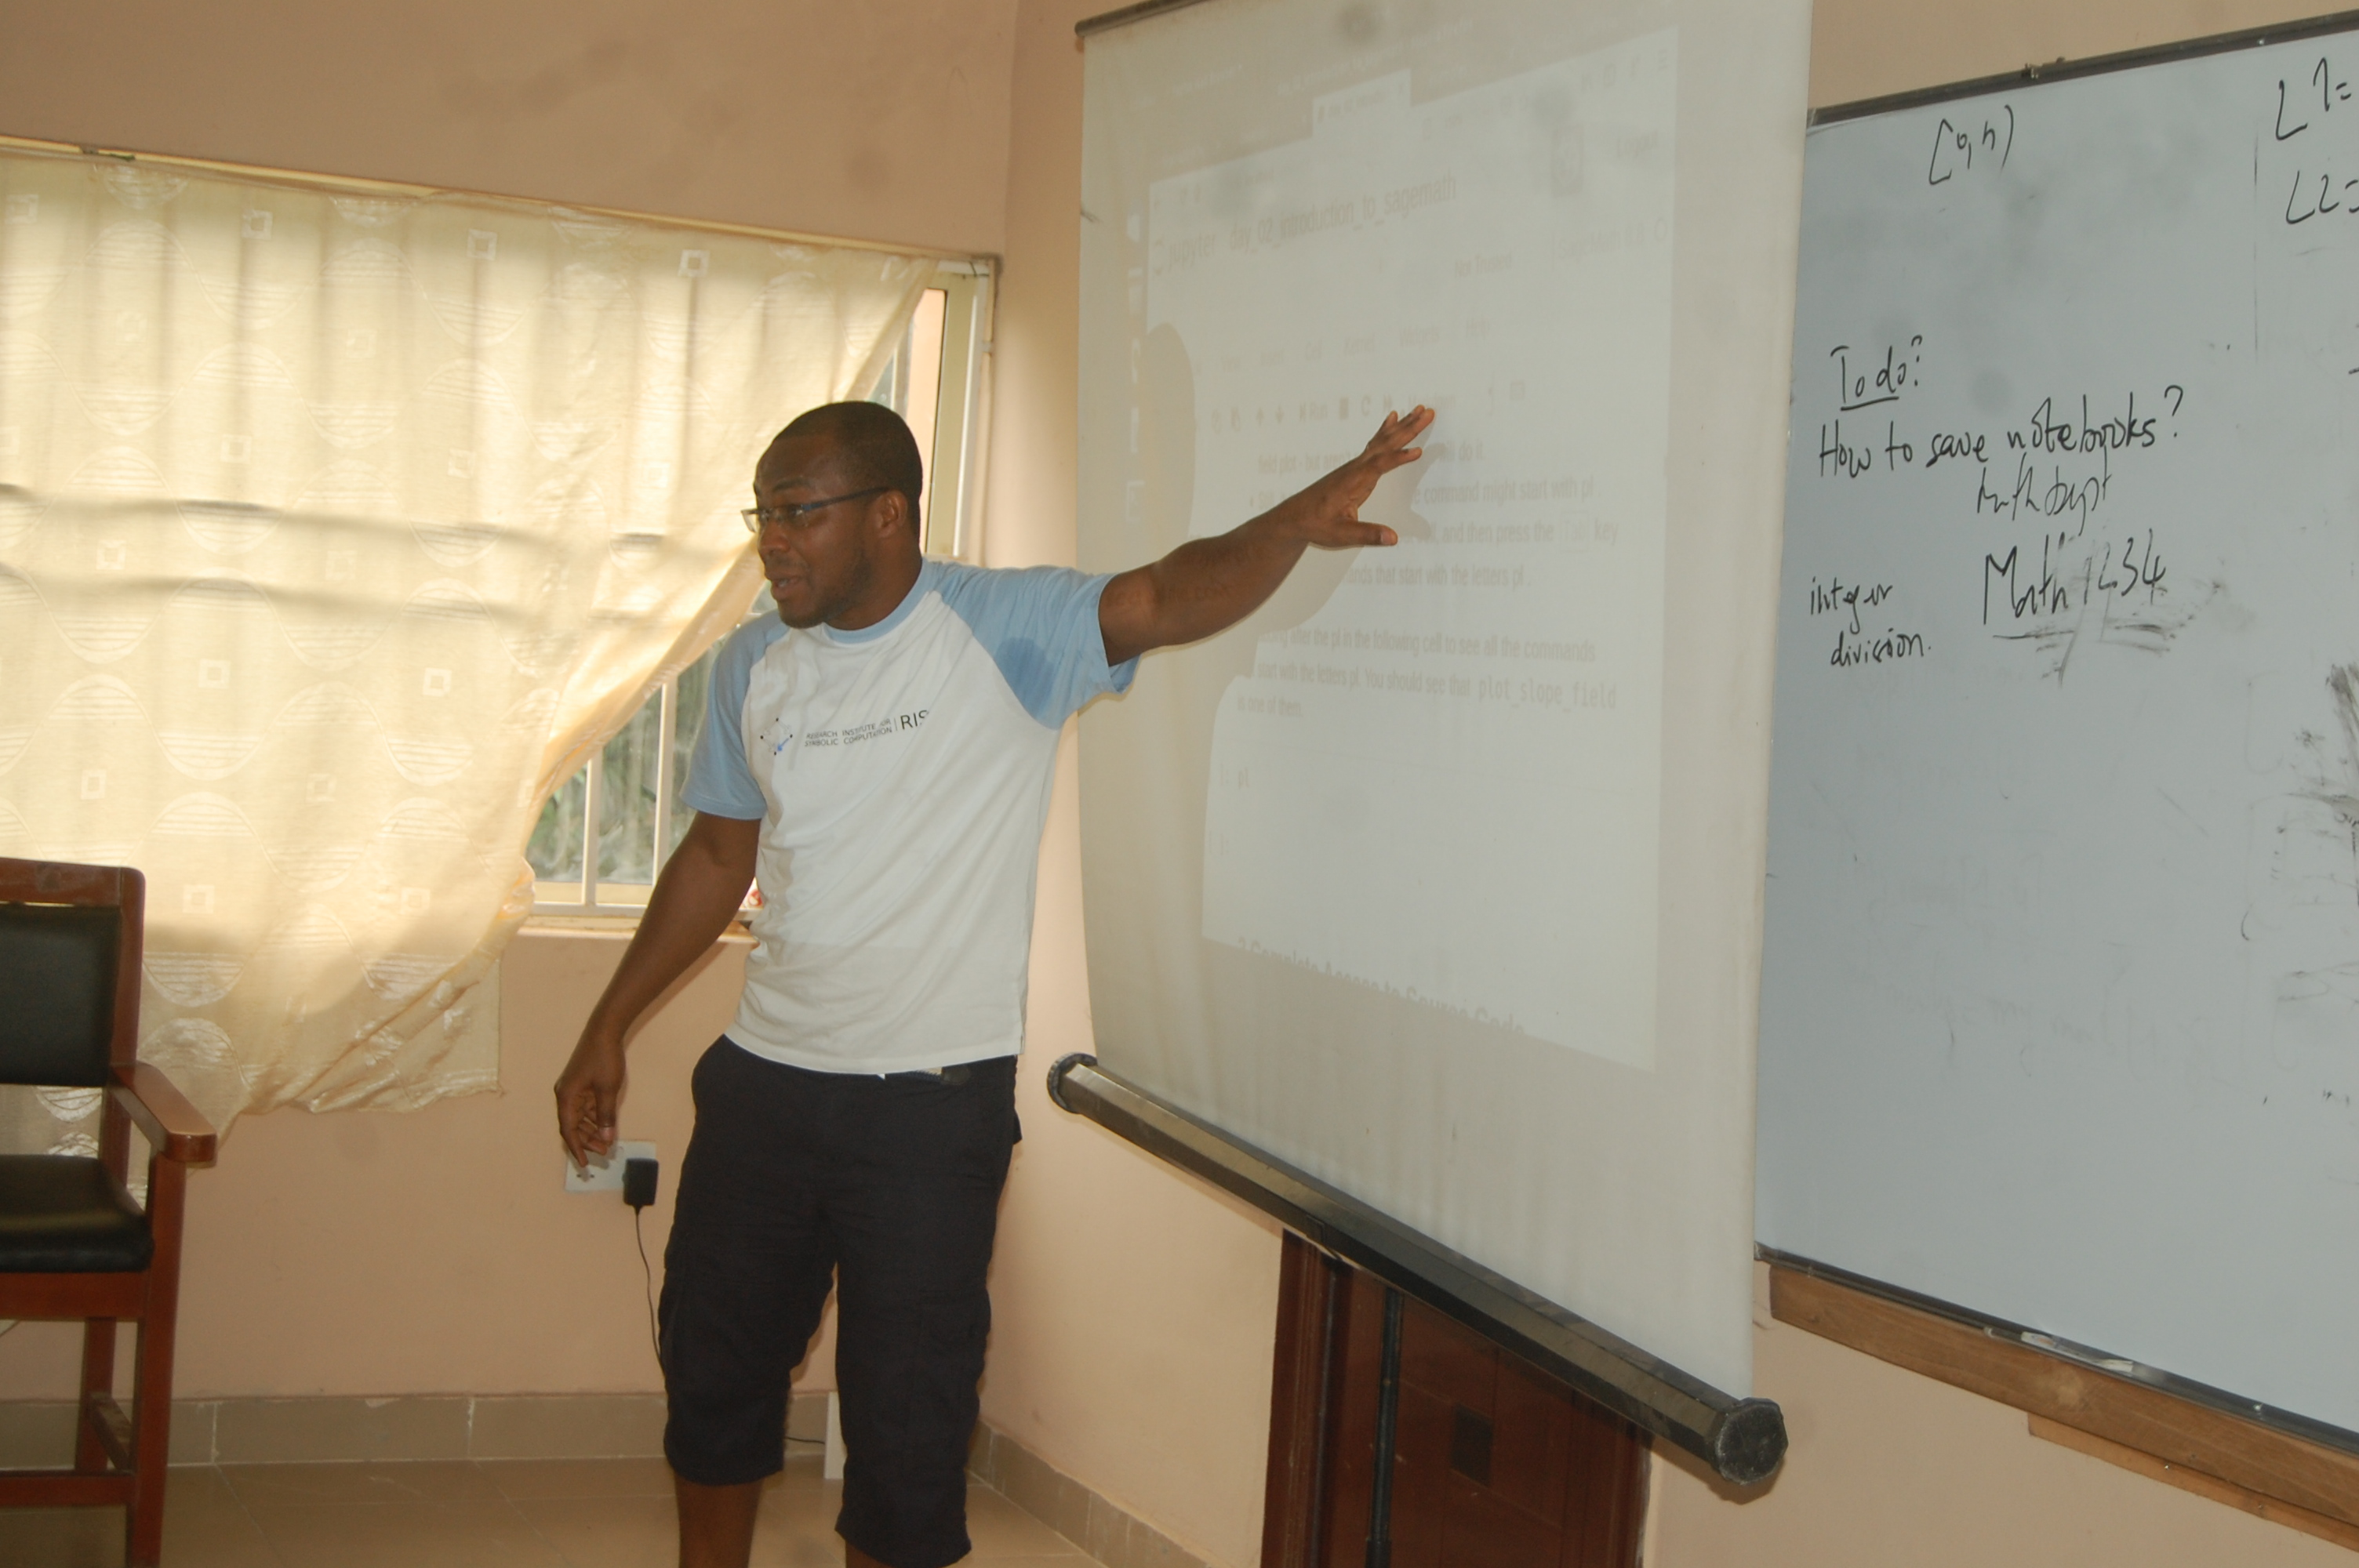 Evans teaches introduction to Sage